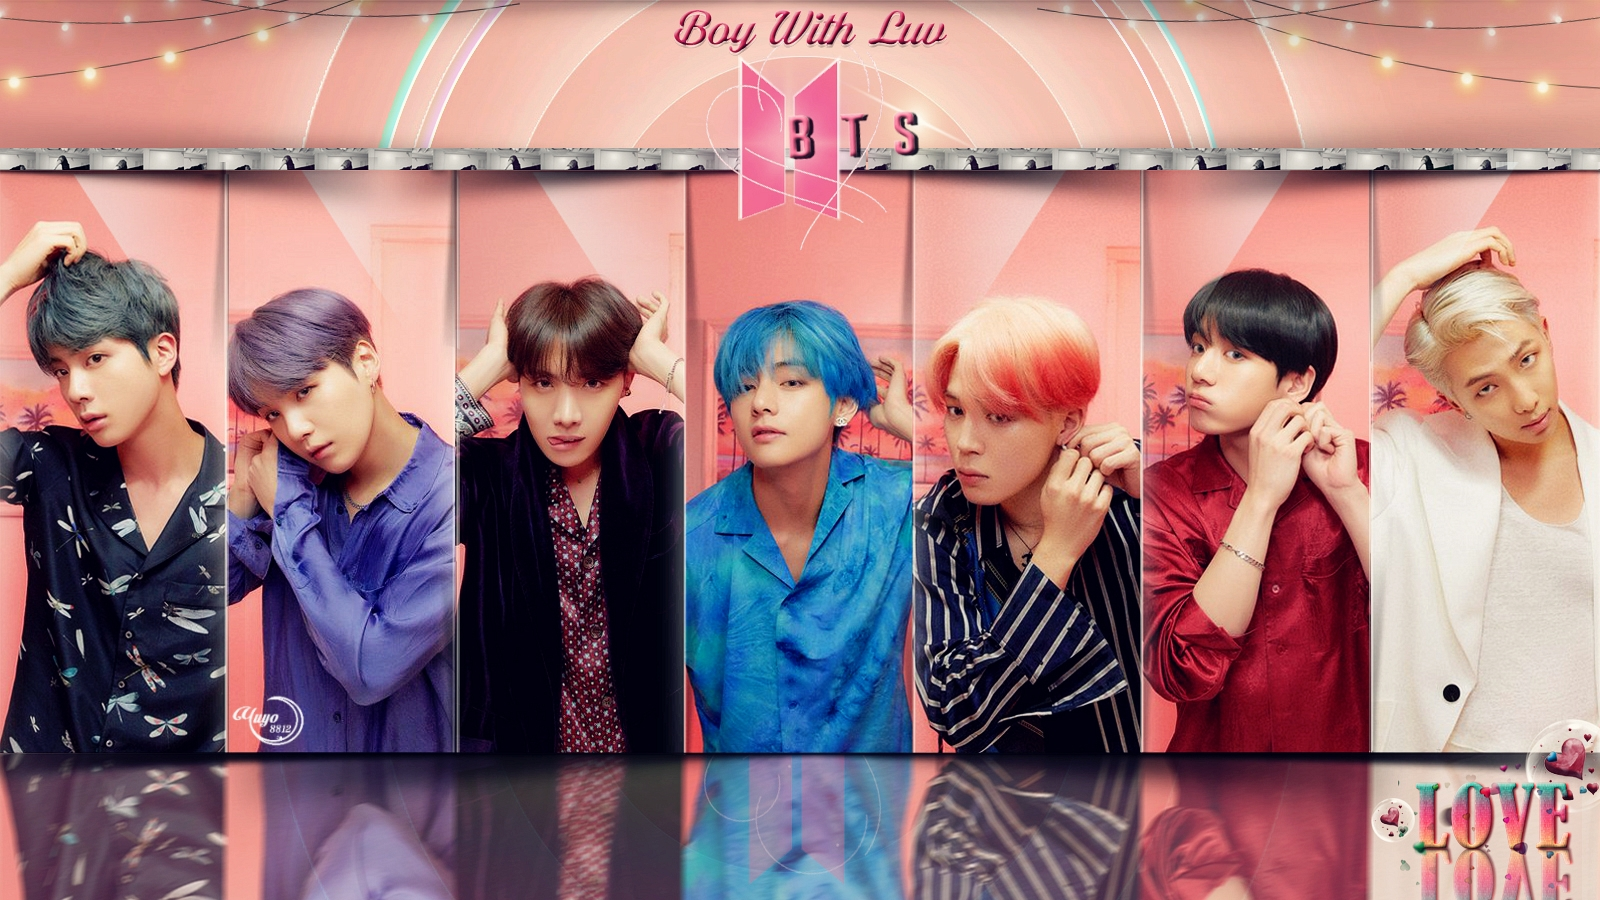 Bangtan Boys BOY WITH LUV WALLPAPER   yulliyo8812 foto 42738954 1600x900